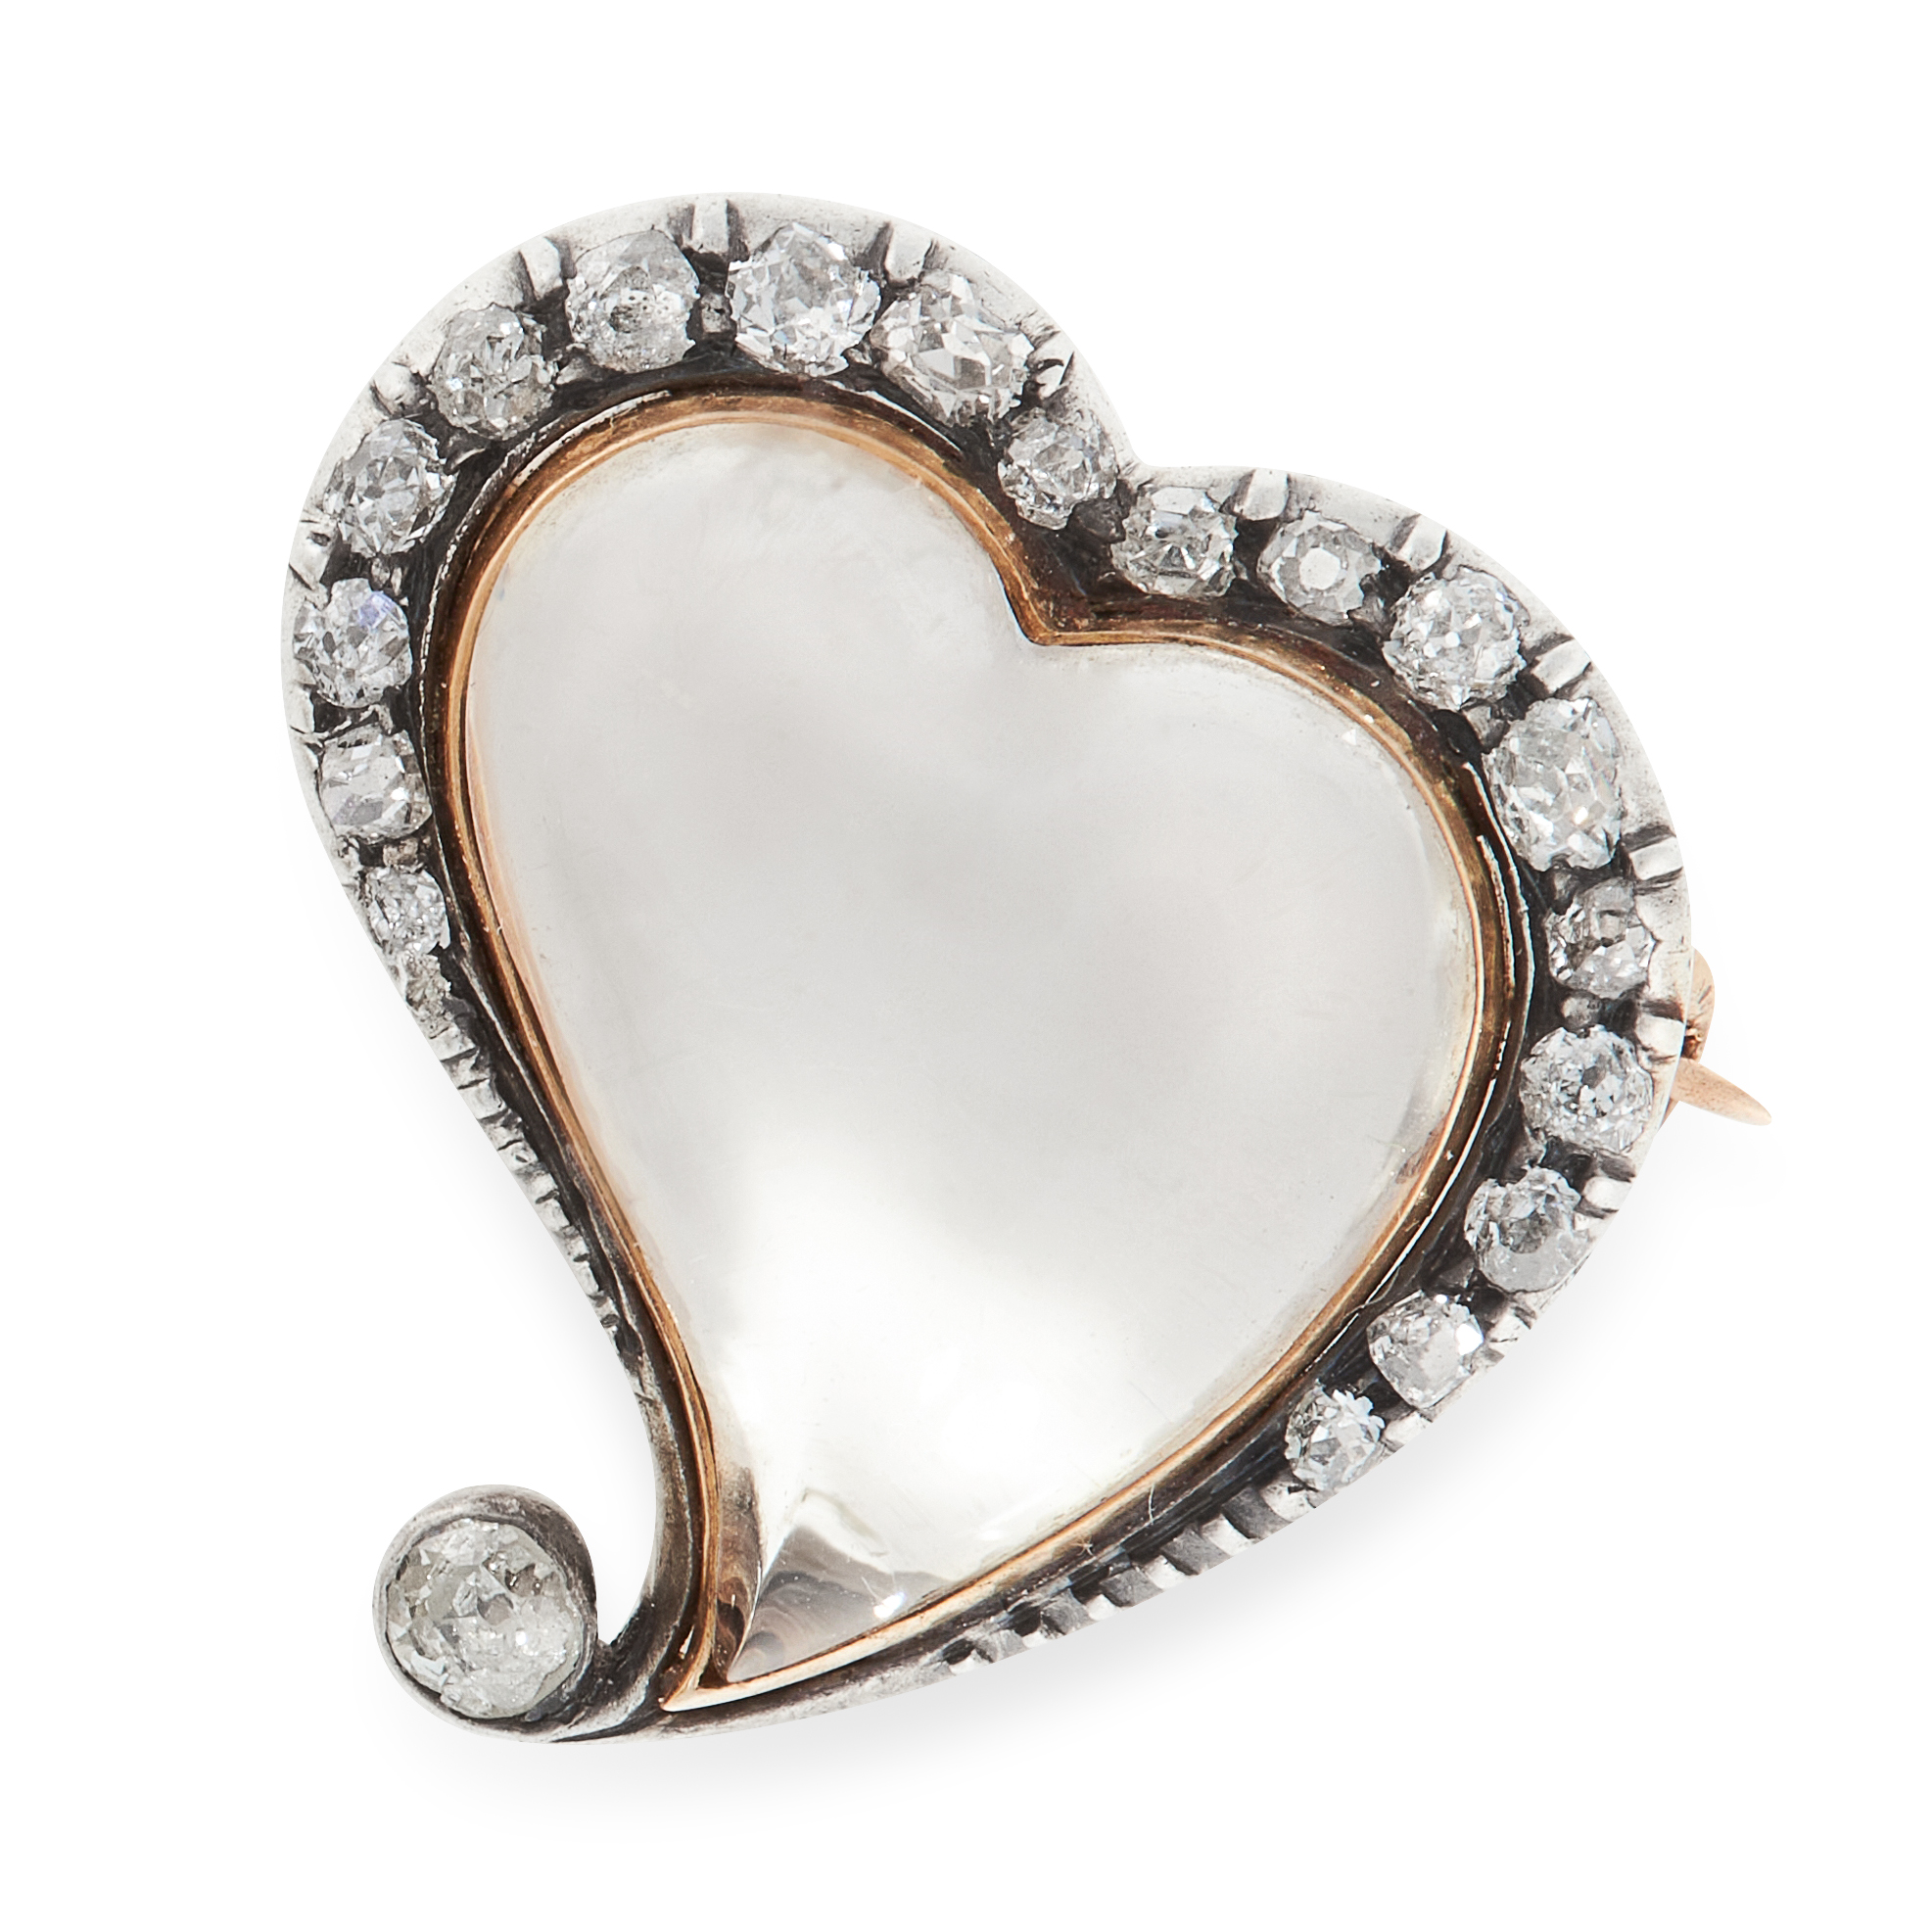 AN ANTIQUE ROCK CRYSTAL AND DIAMOND WITCH'S HEART BROOCH, 19TH CENTURY in yellow gold and silver,